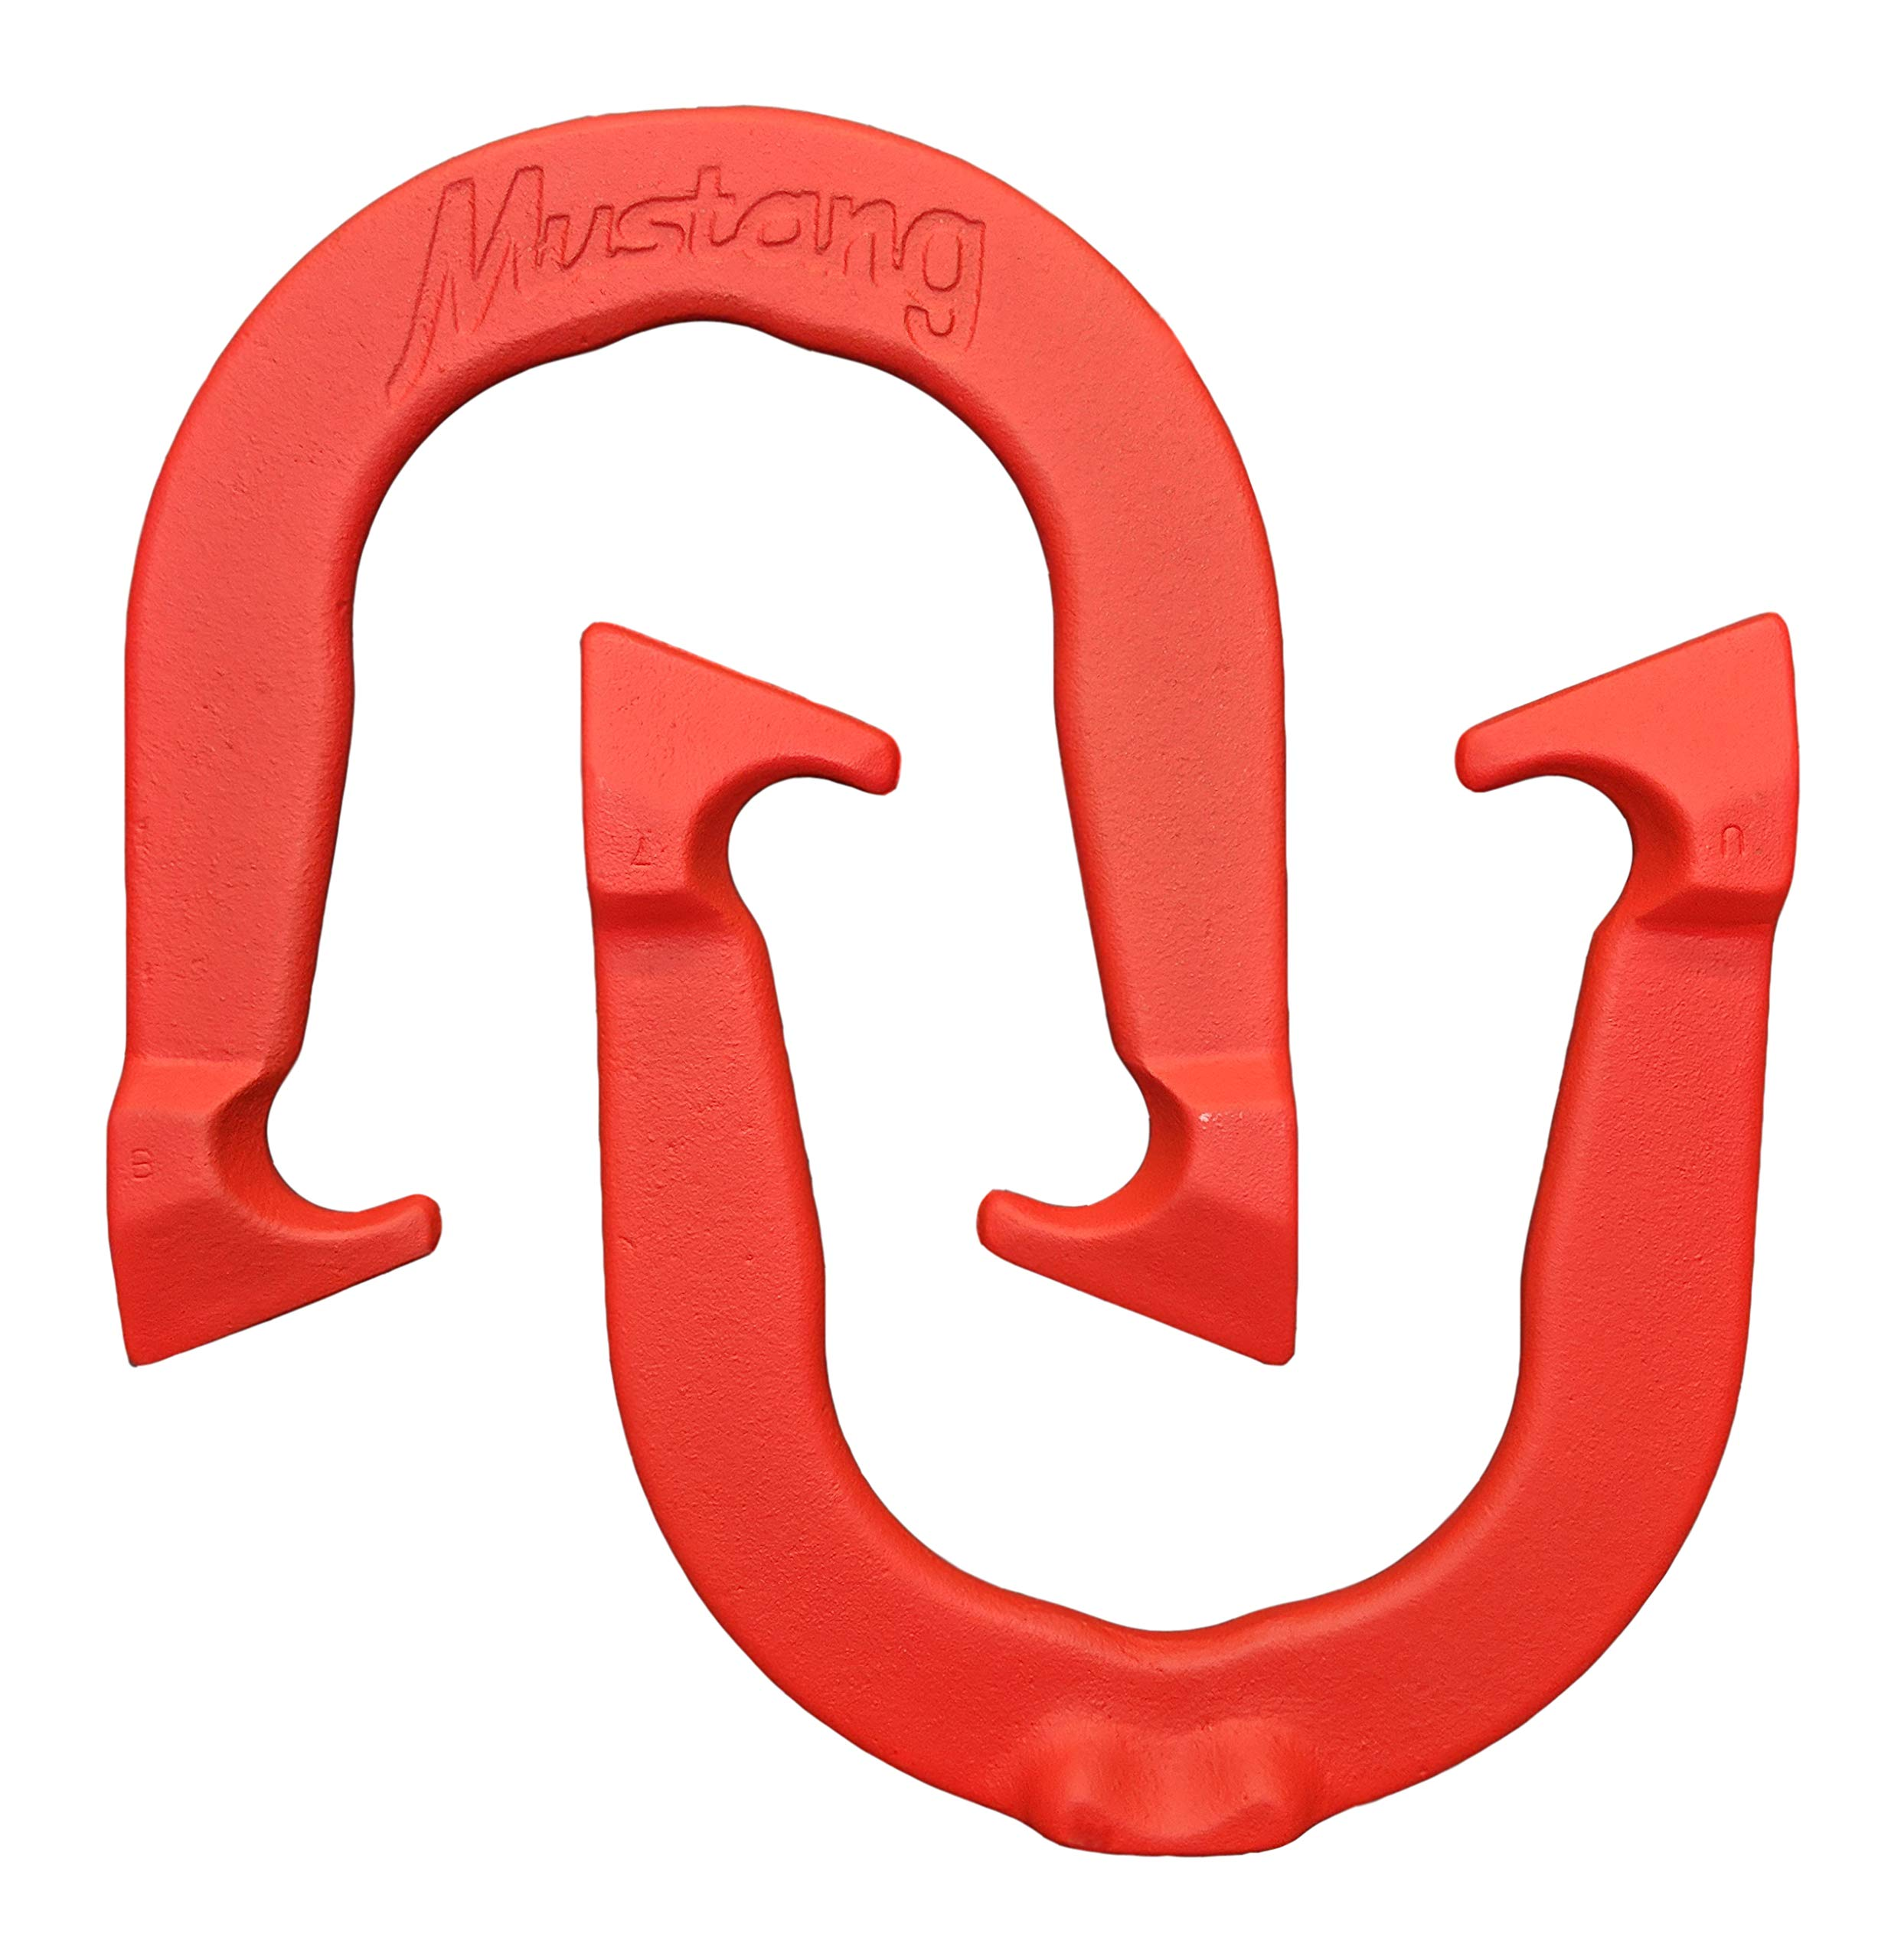 Mustang Professional Pitching Horseshoes- Made in USA! (Red- Single Pair (2 Shoes))